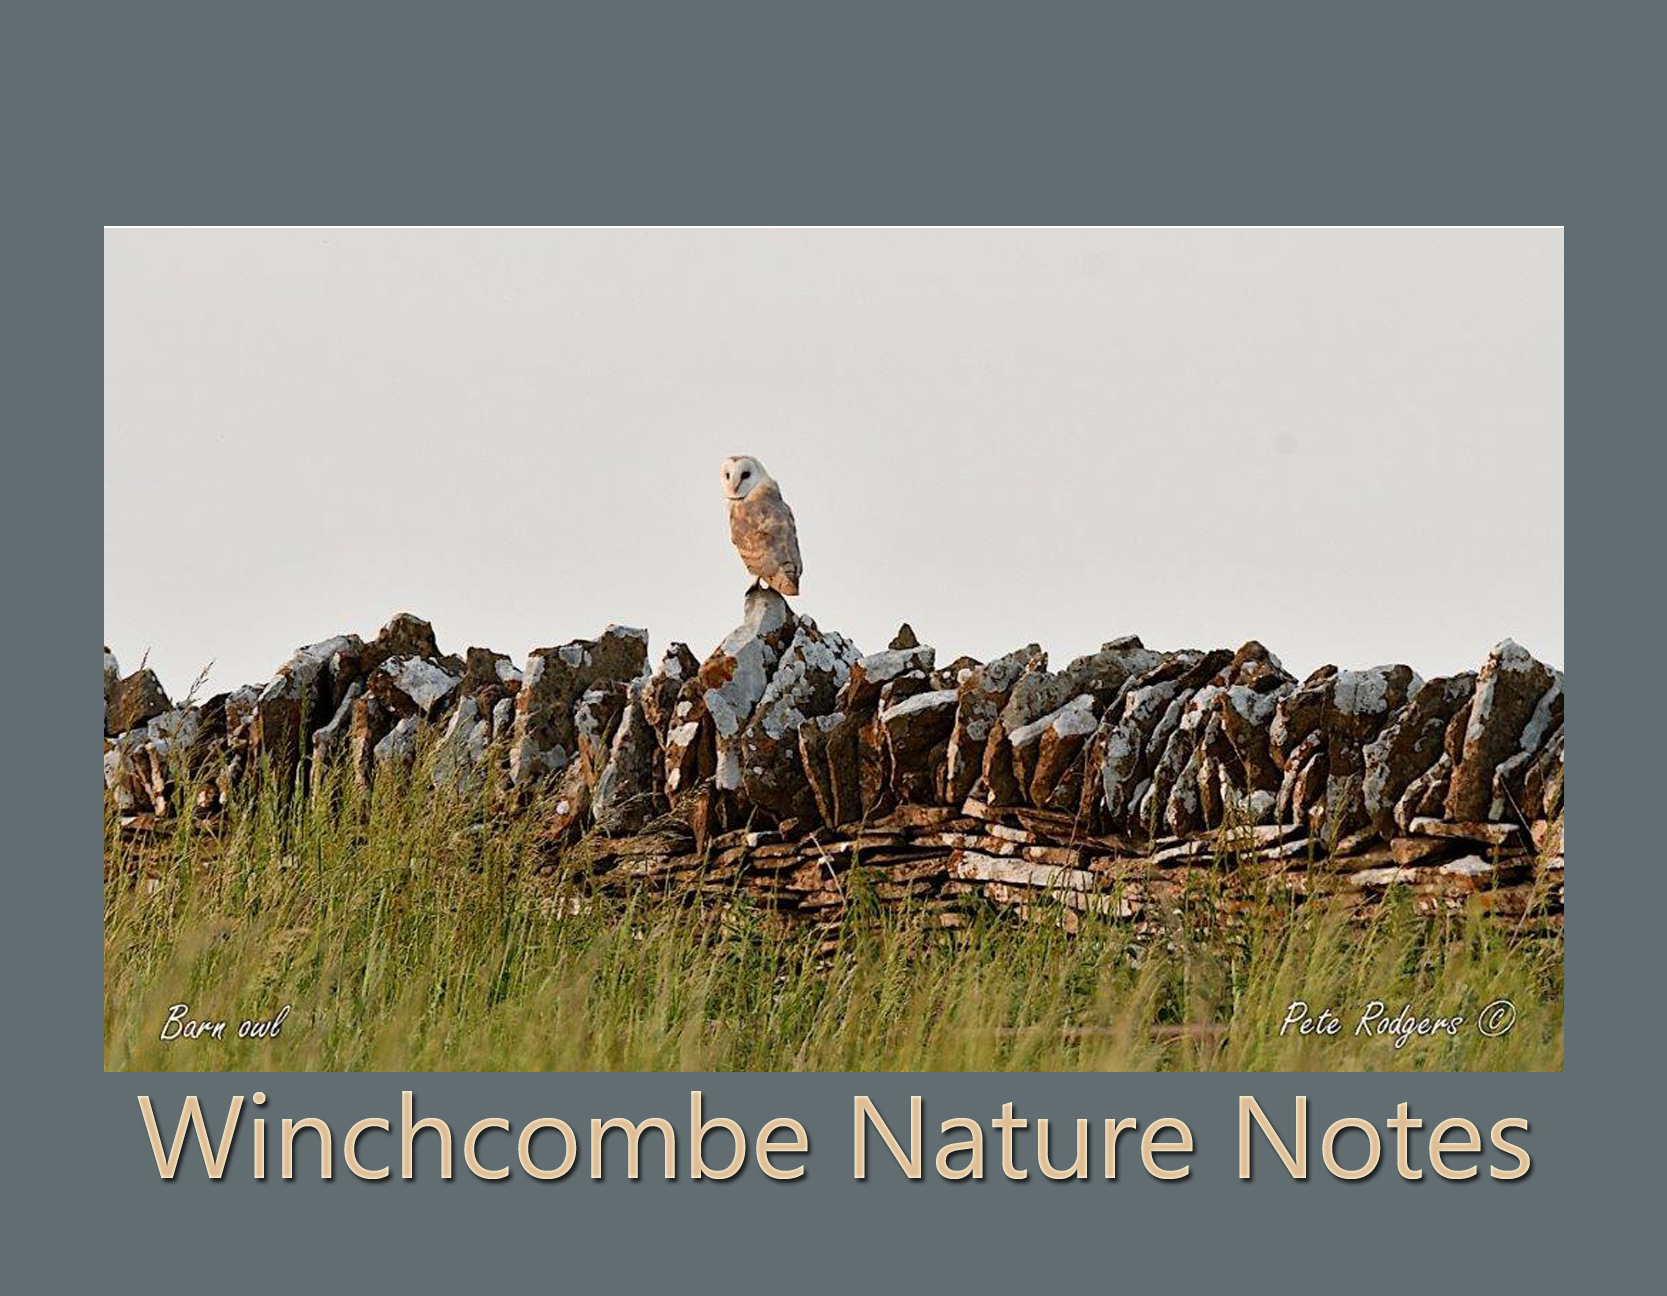 Winchcombe Nature Notes July